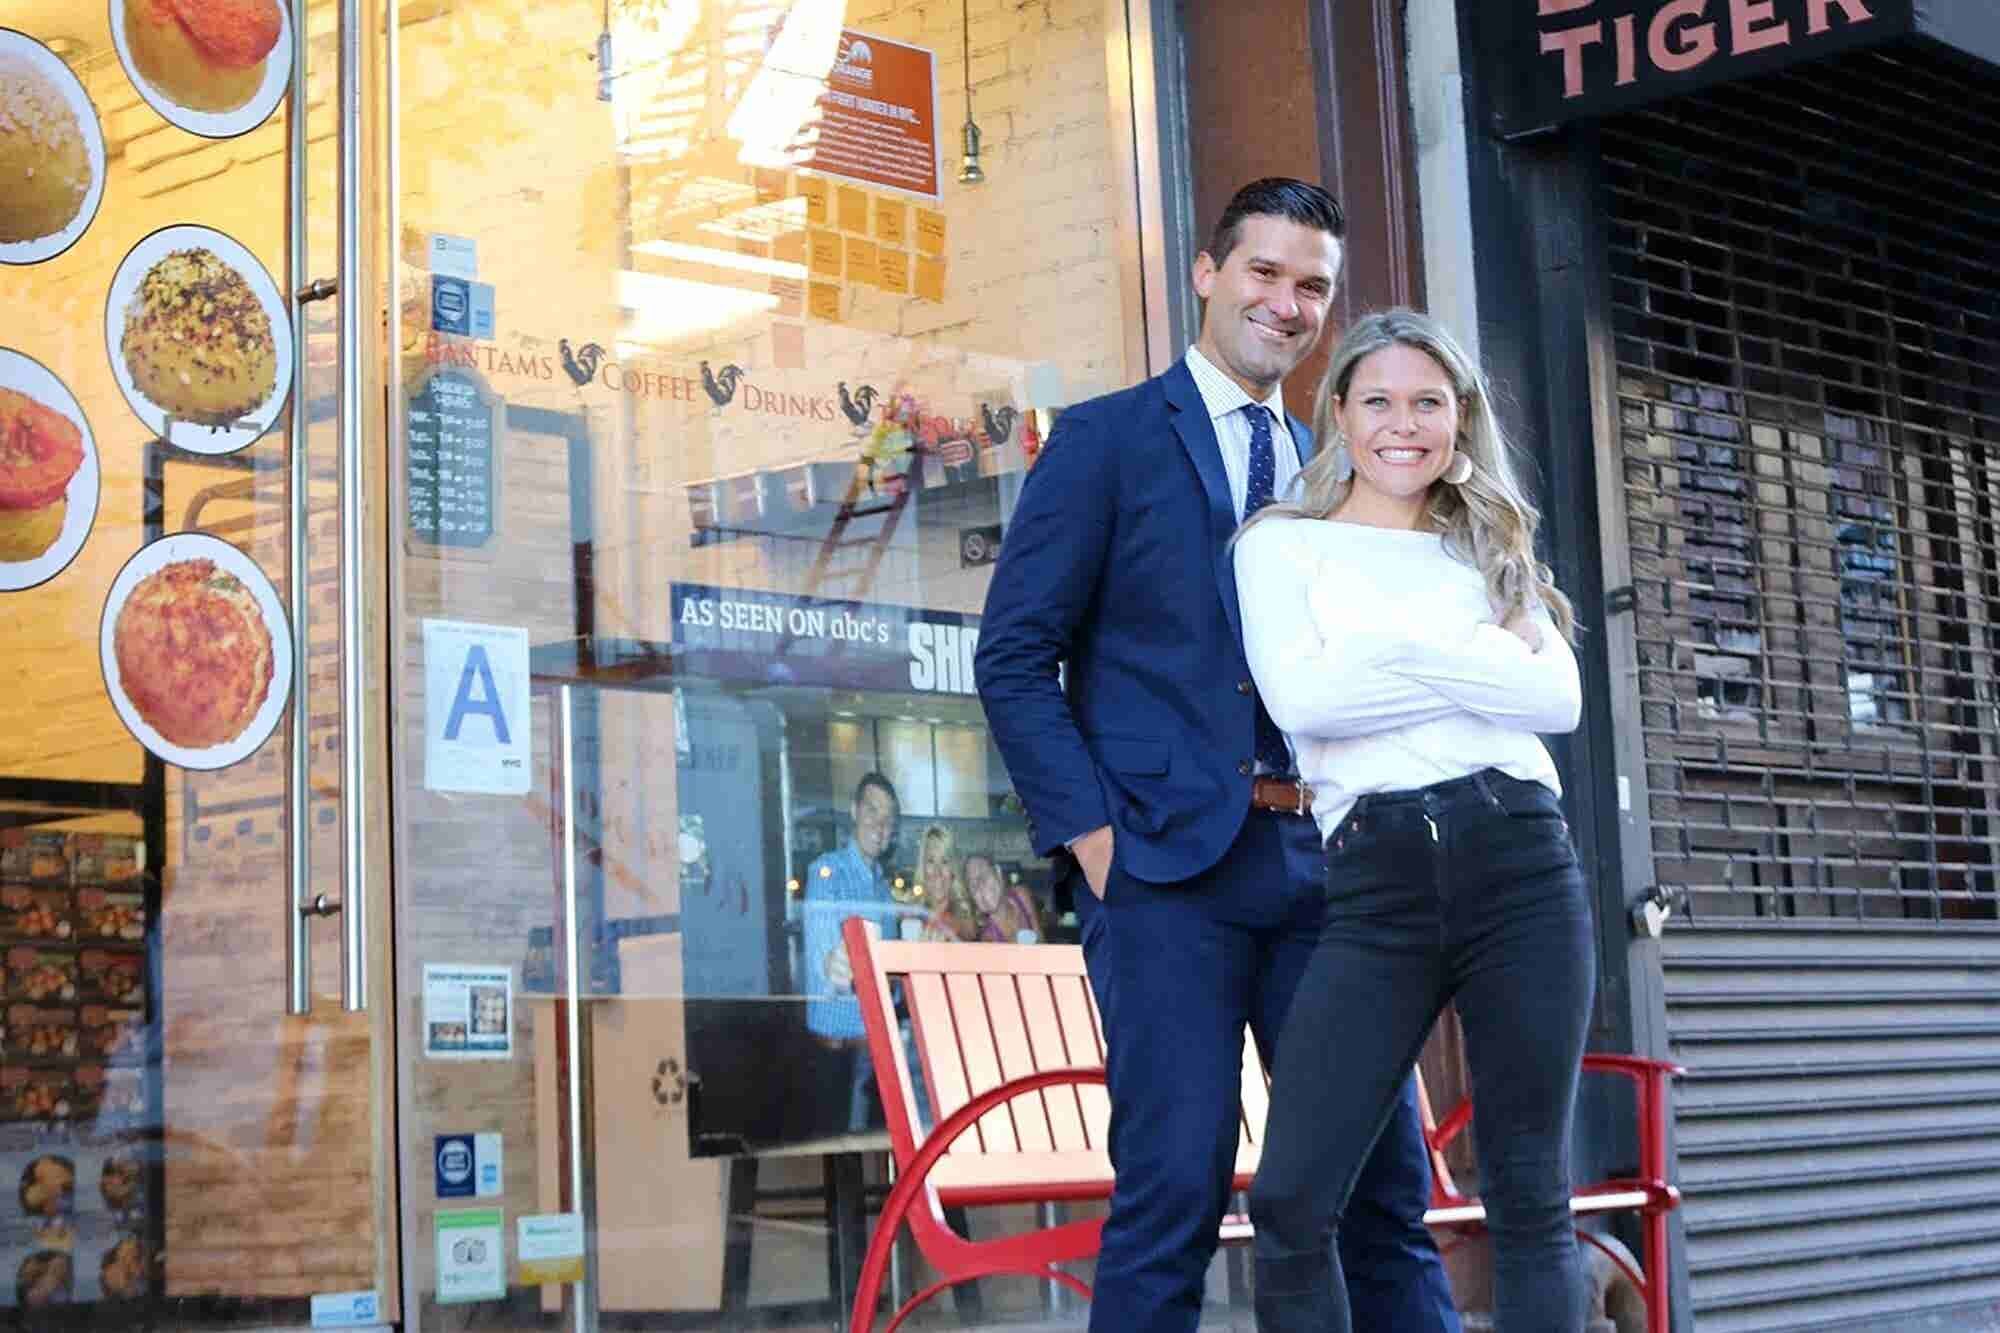 The NYC Bagel Shop That Blew Up Thanks to 'Shark Tank' Just Got Acquired for $34 Million